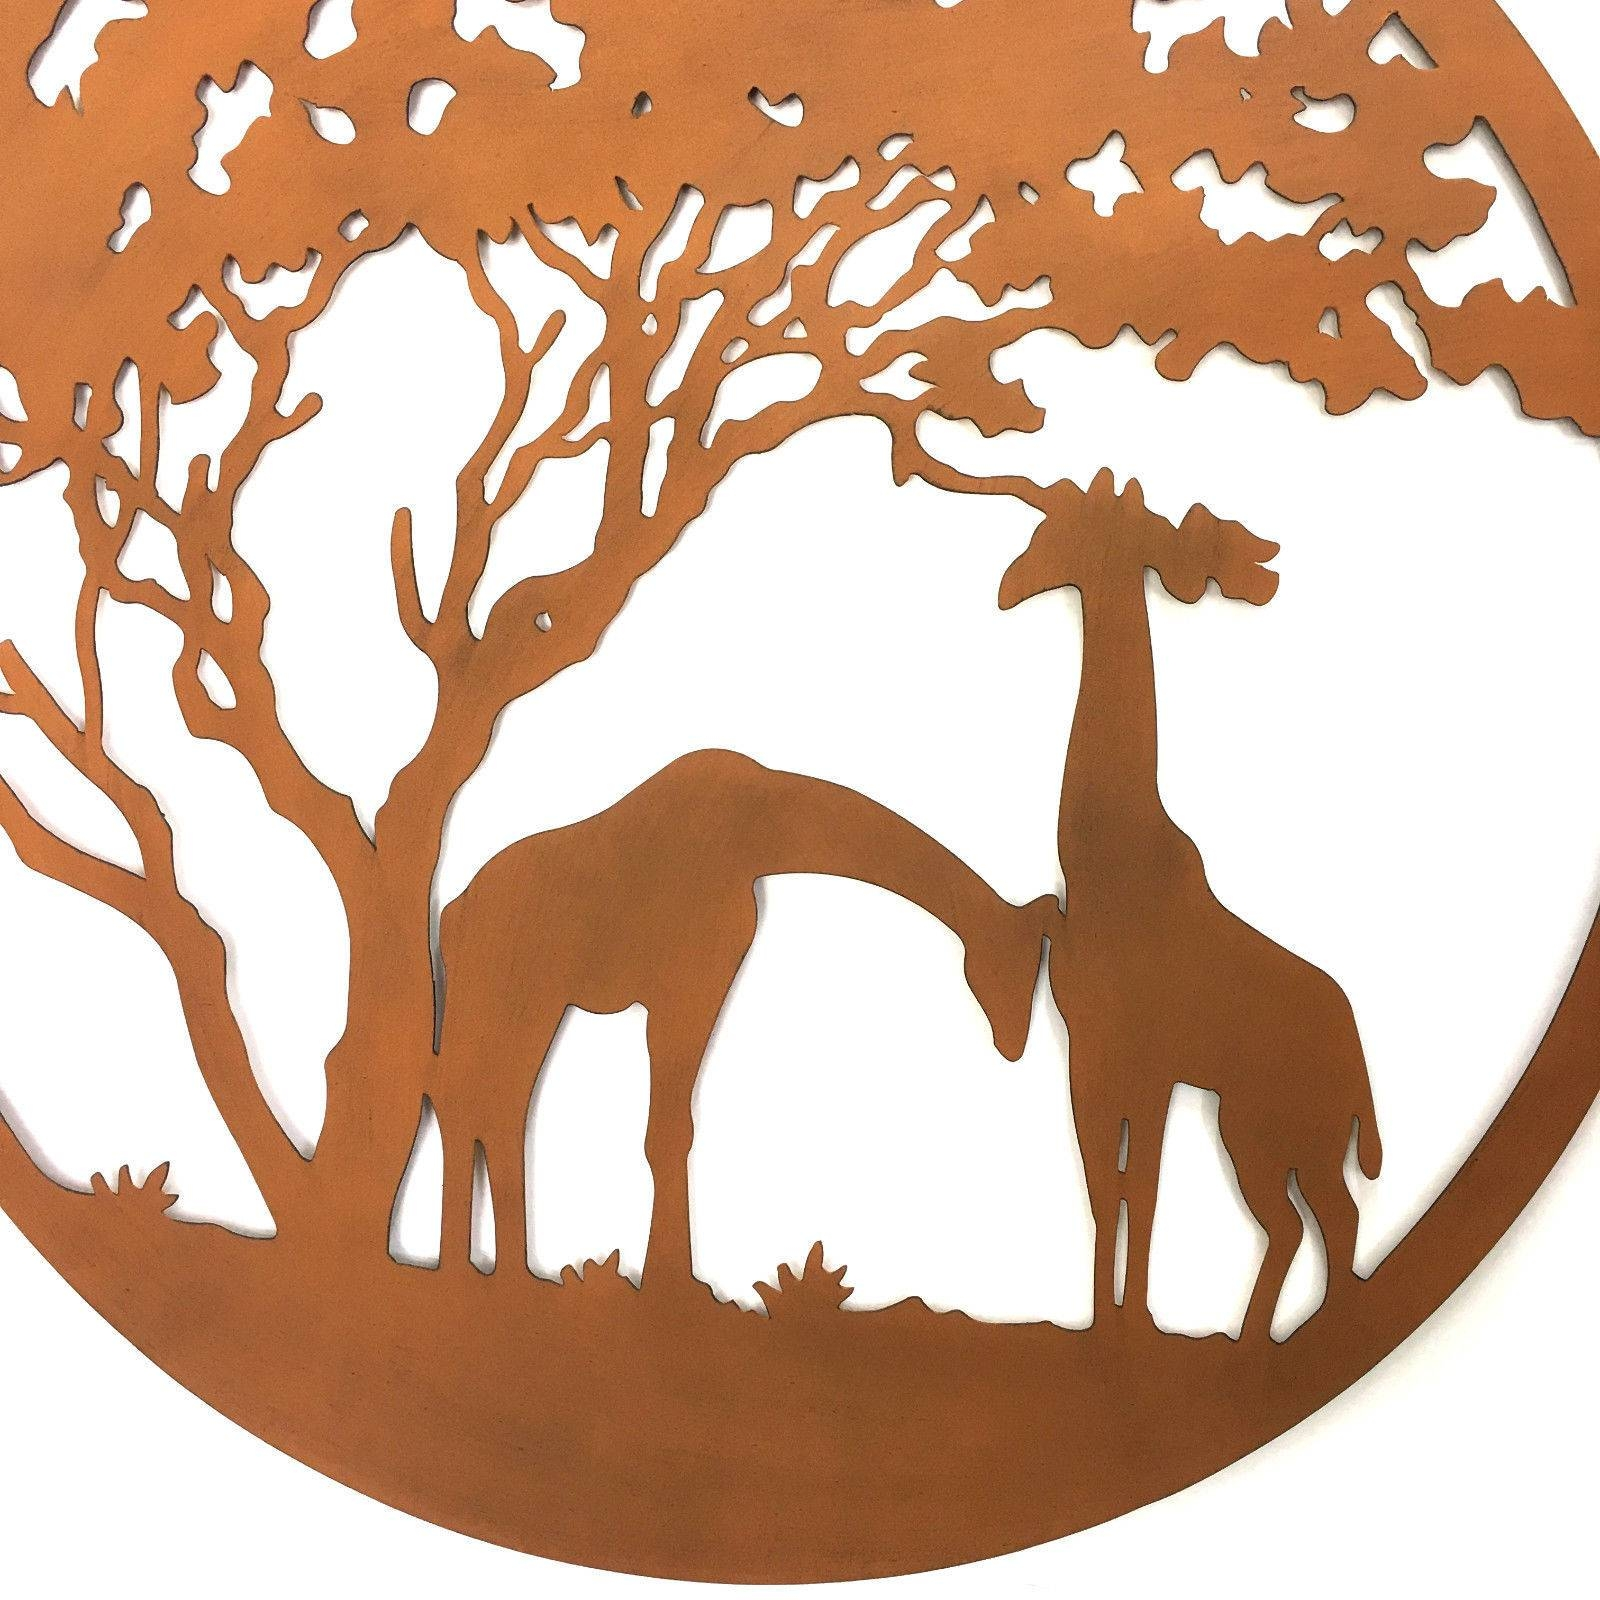 Giraffe Lasercut Metal Wall Art 99Cm Regarding Most Popular Giraffe Metal Wall Art (View 19 of 20)